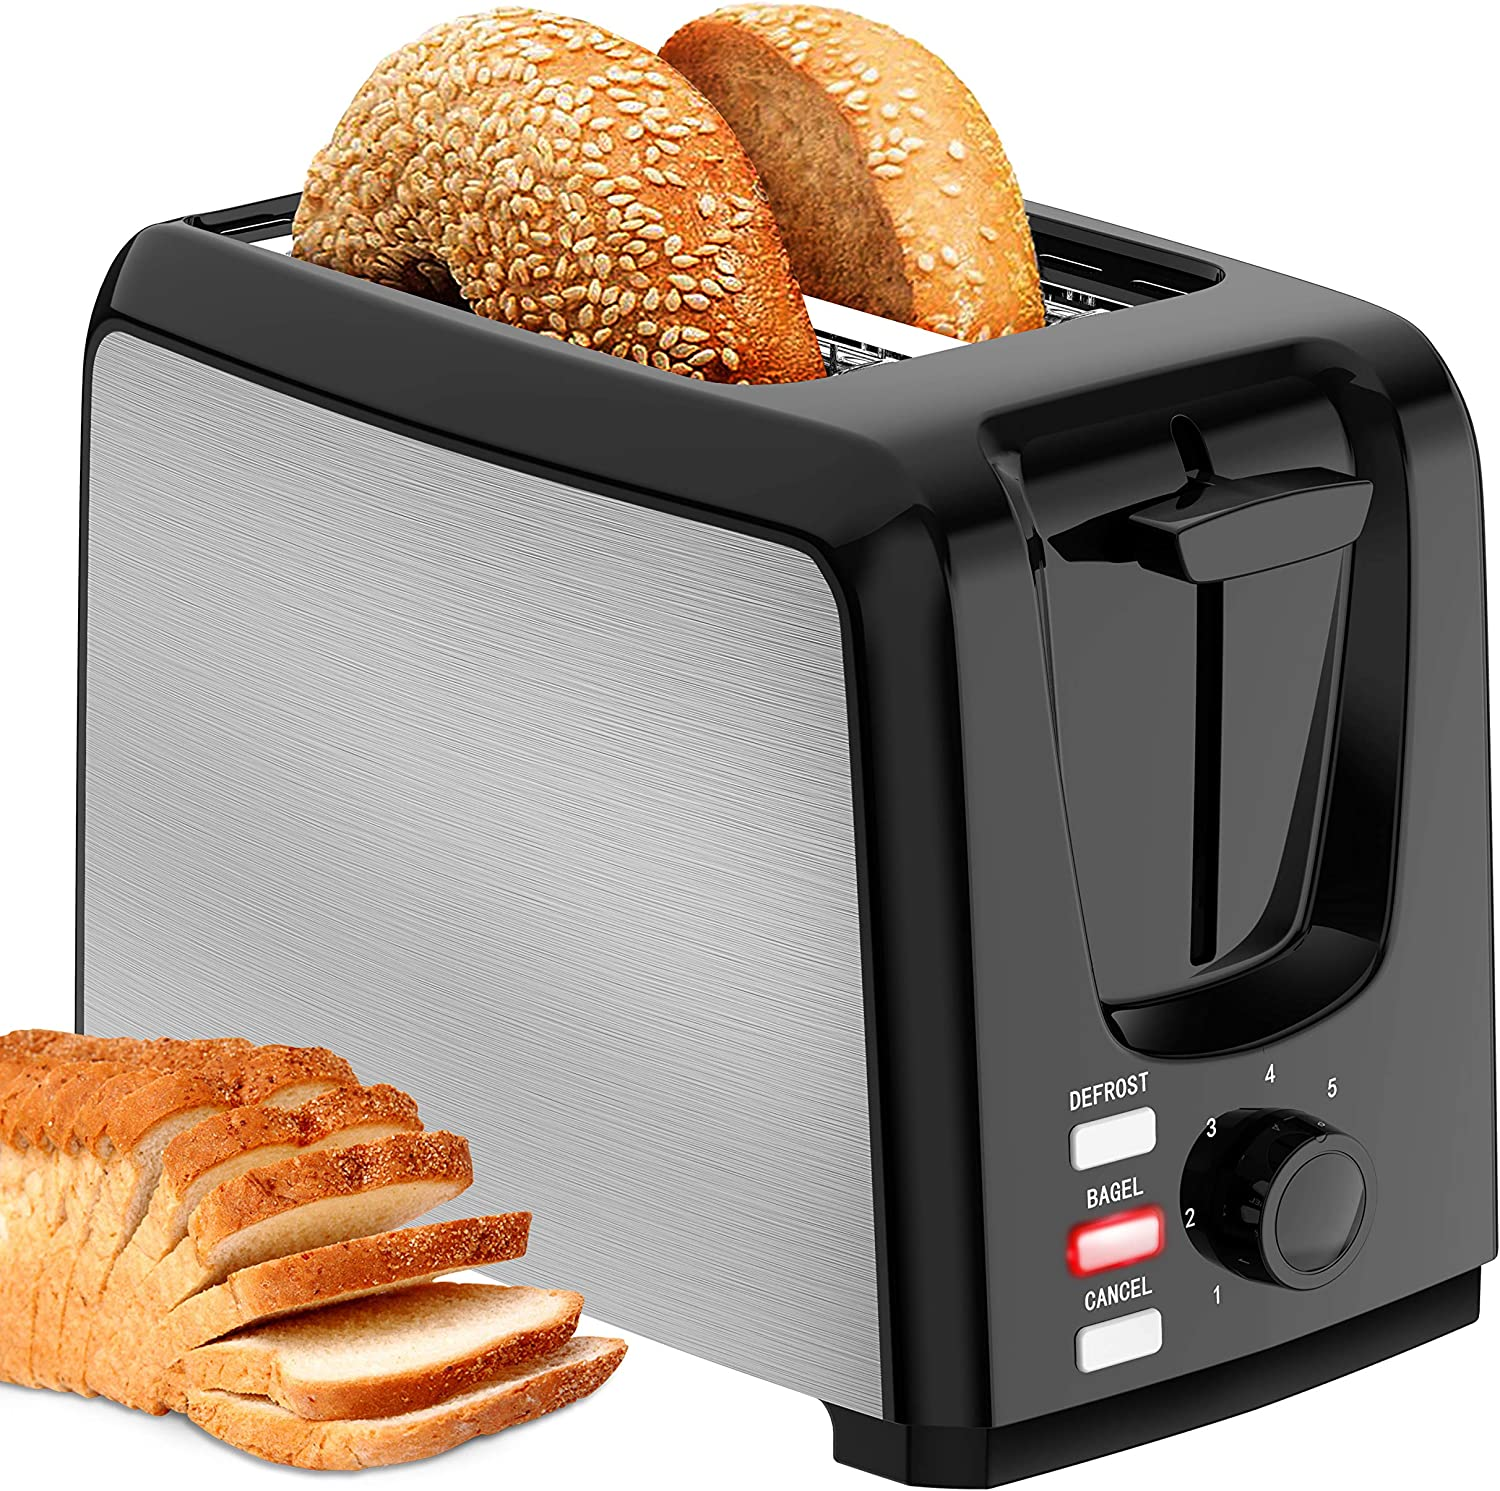 Toaster 2 Slice Wide Slot 2 Slice Toaster Best Rated with Bagel/Defrost/Cancel Function Cool Touch Black Toaster for Bread Bagel with Removable Crumb Tray